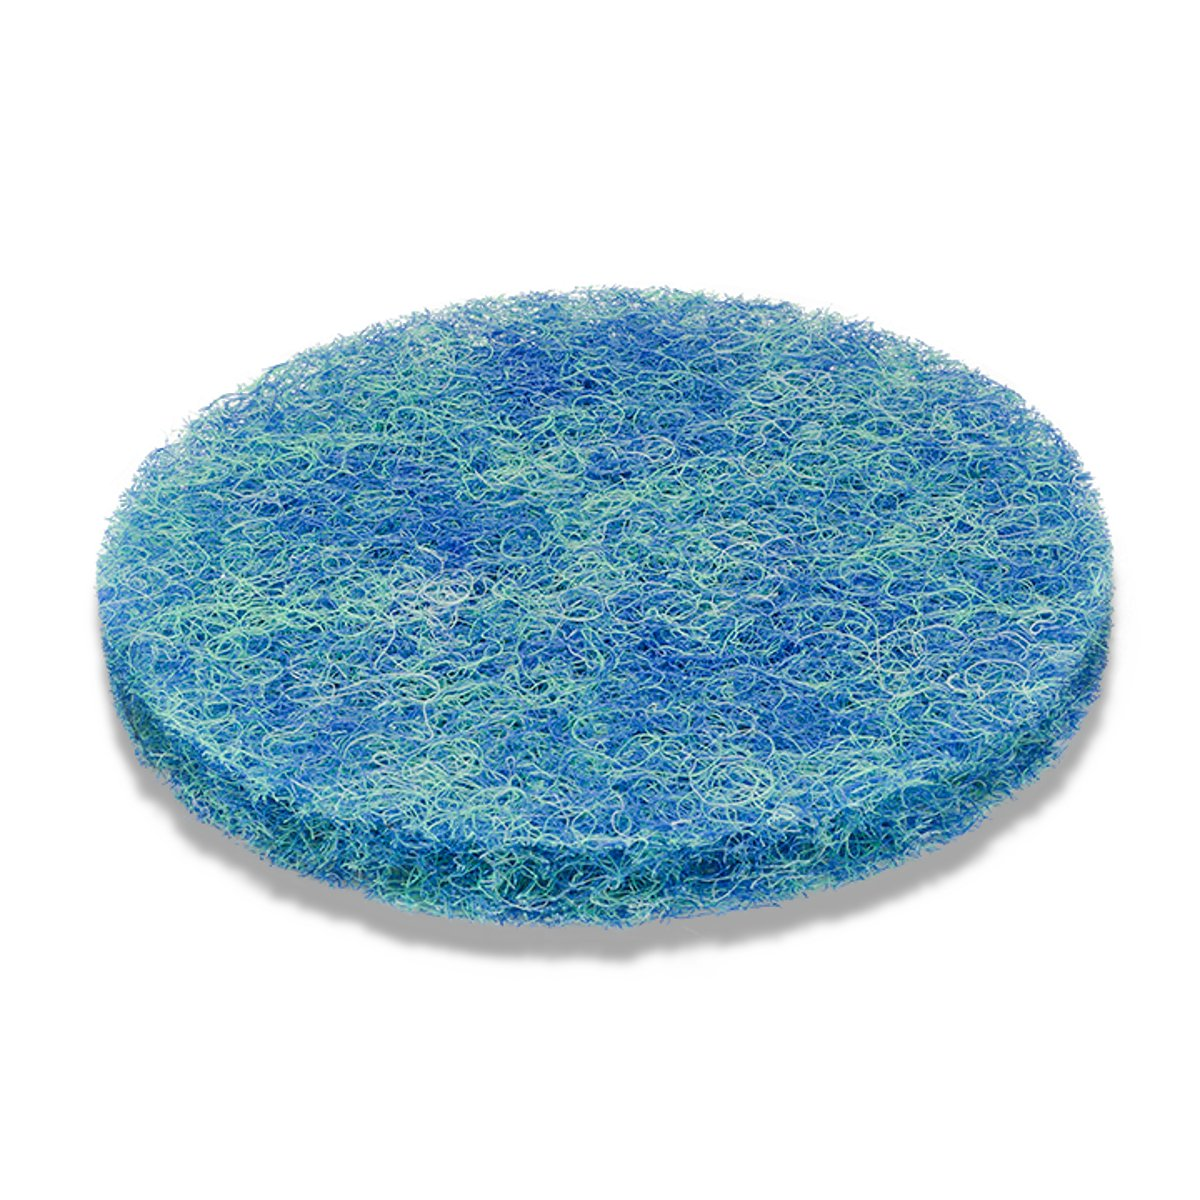 Aquascape Filter Mat for Pond Waterfall Spillway Filter | 80006 by Aquascape